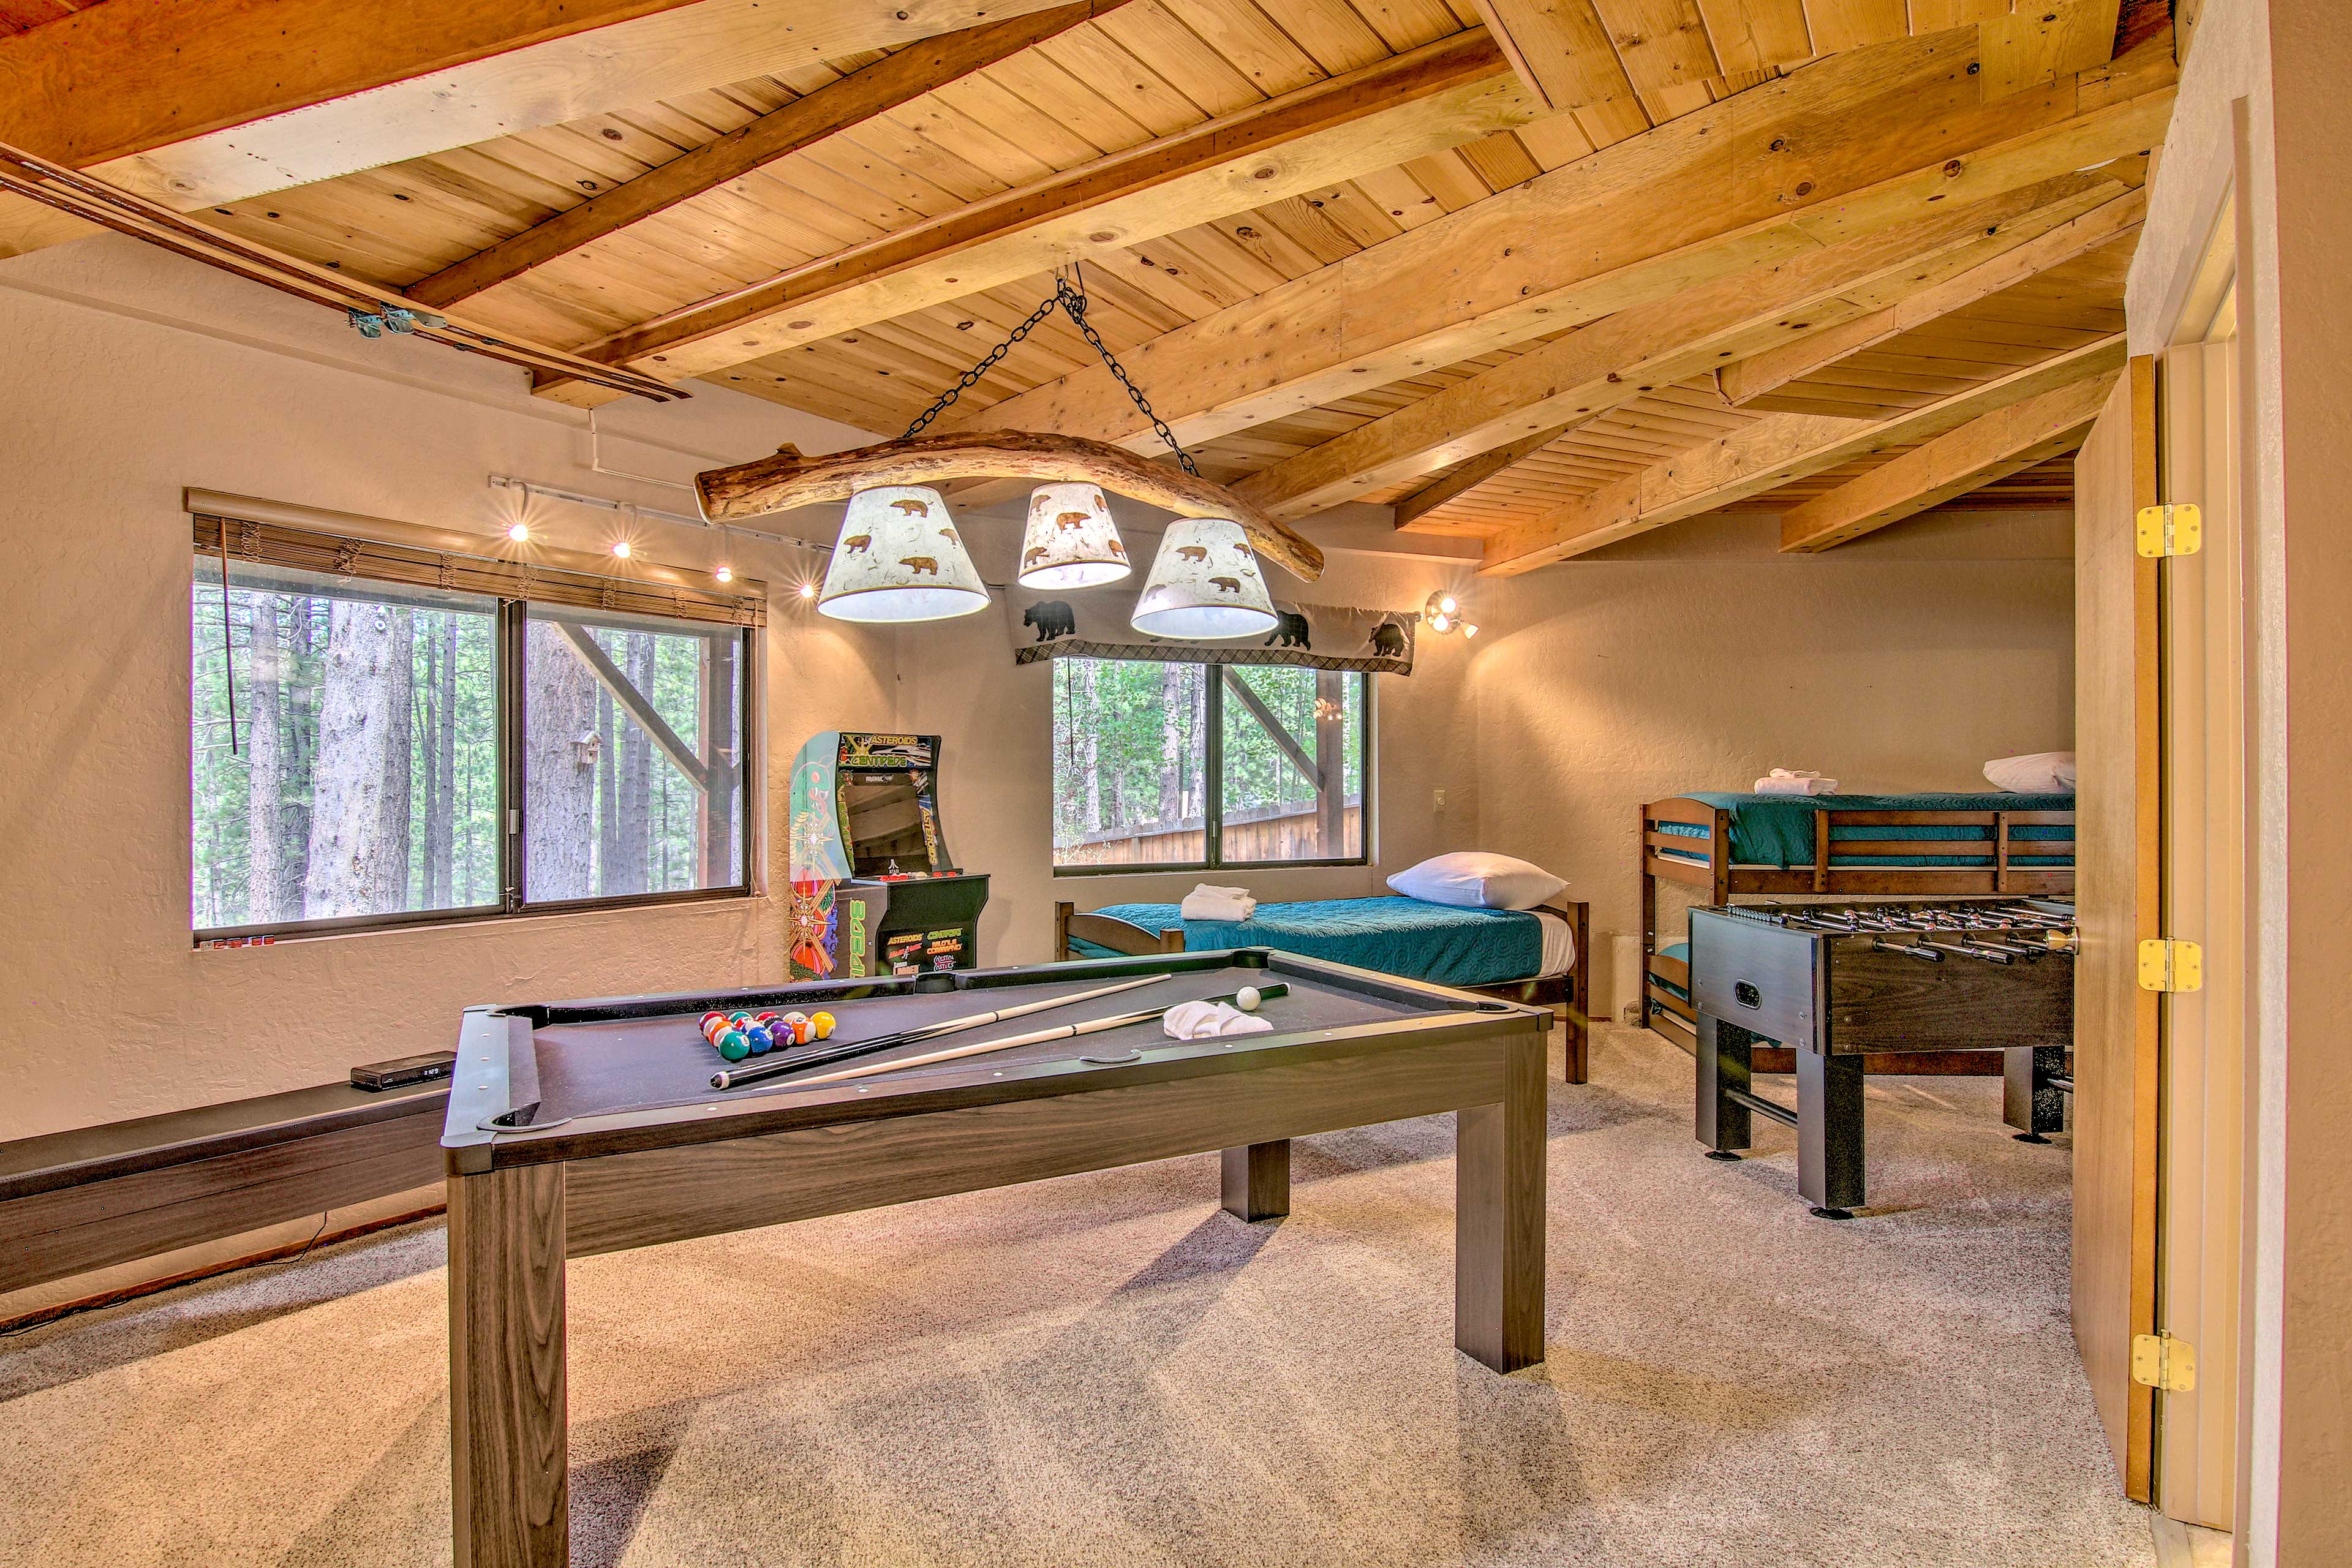 Spend time staying entertained in the game room.